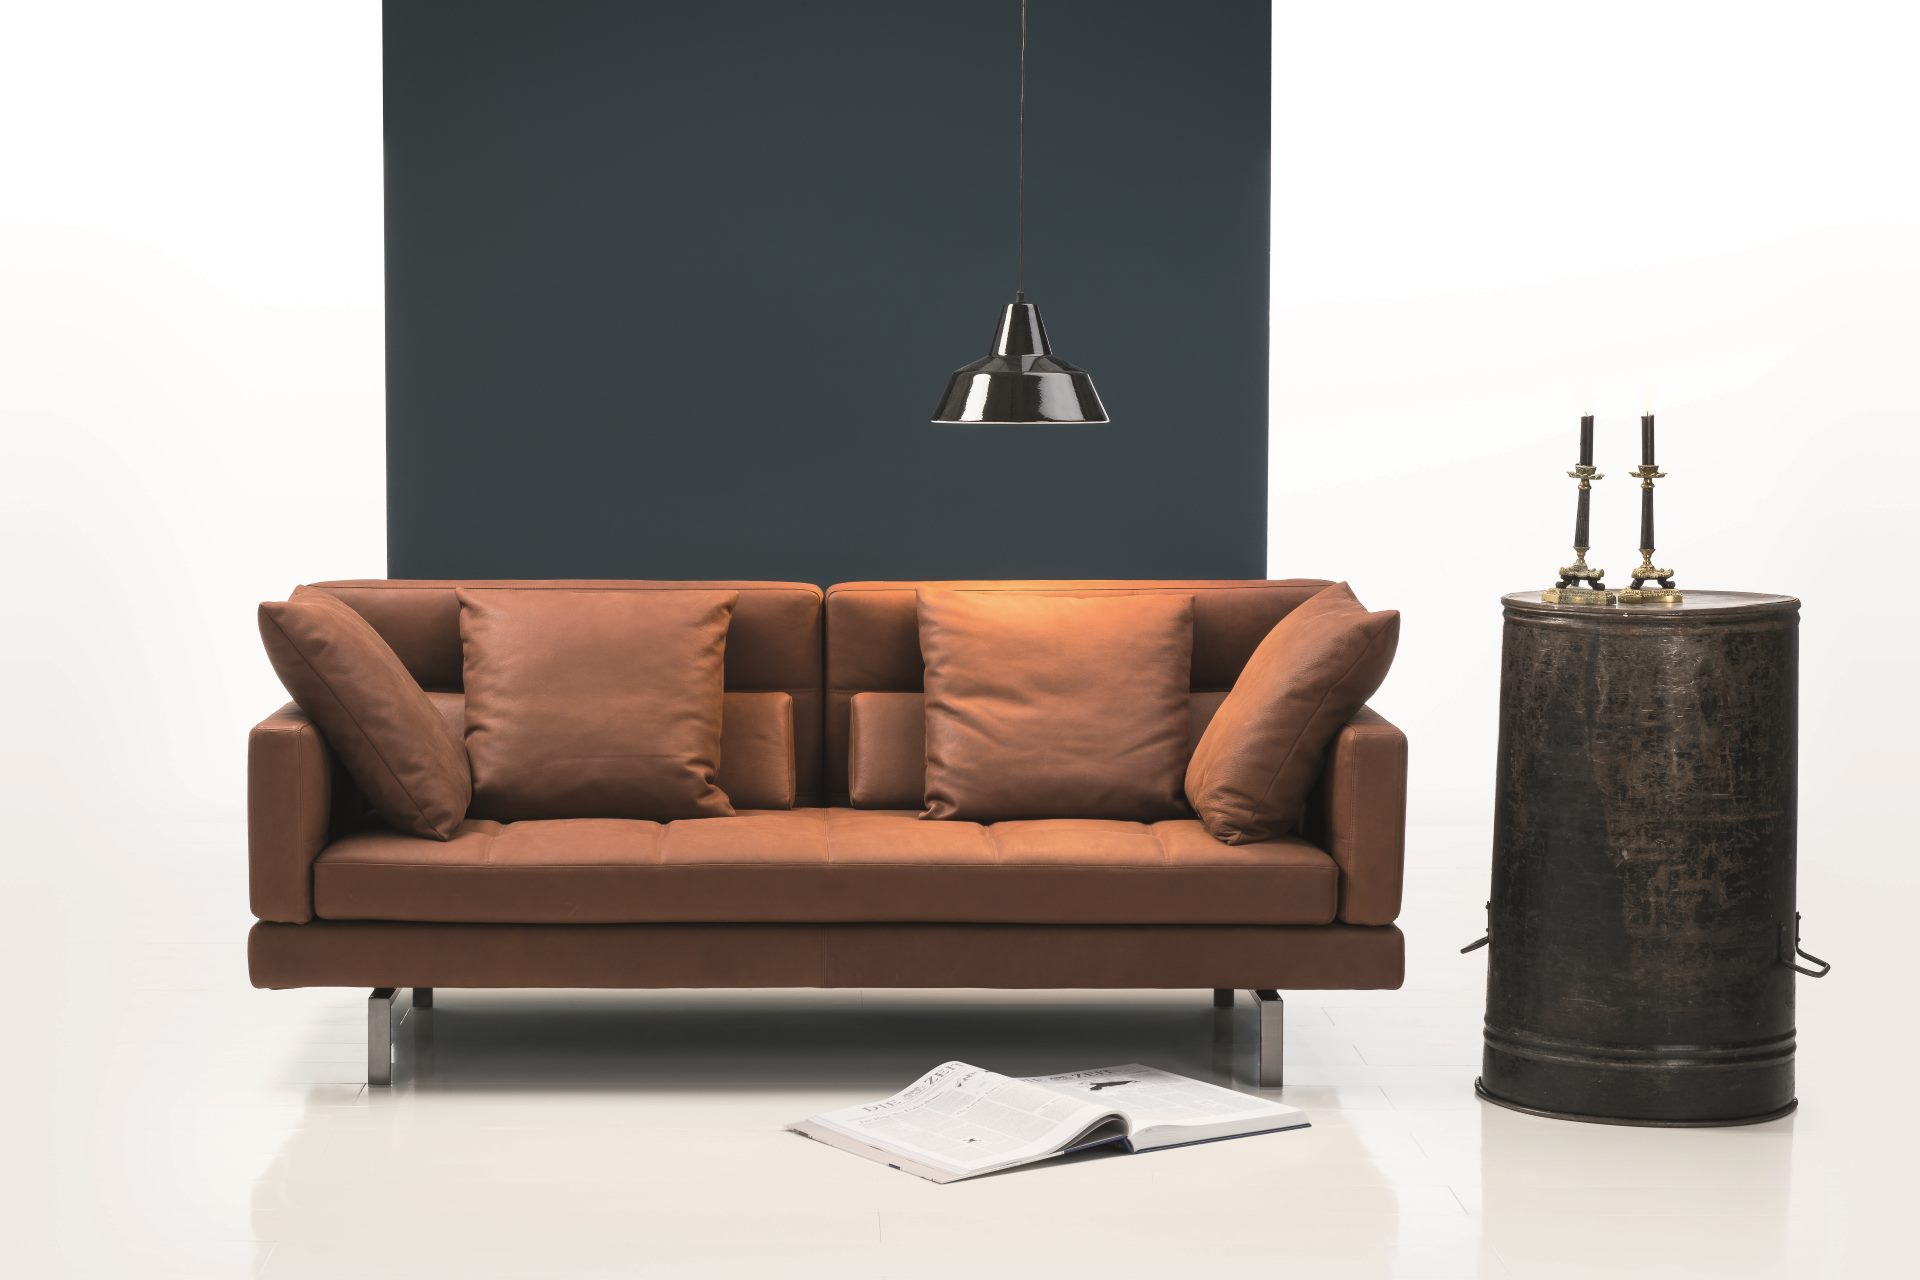 produkt sofa amber wohnwiese jette schlund ellingen team 7. Black Bedroom Furniture Sets. Home Design Ideas